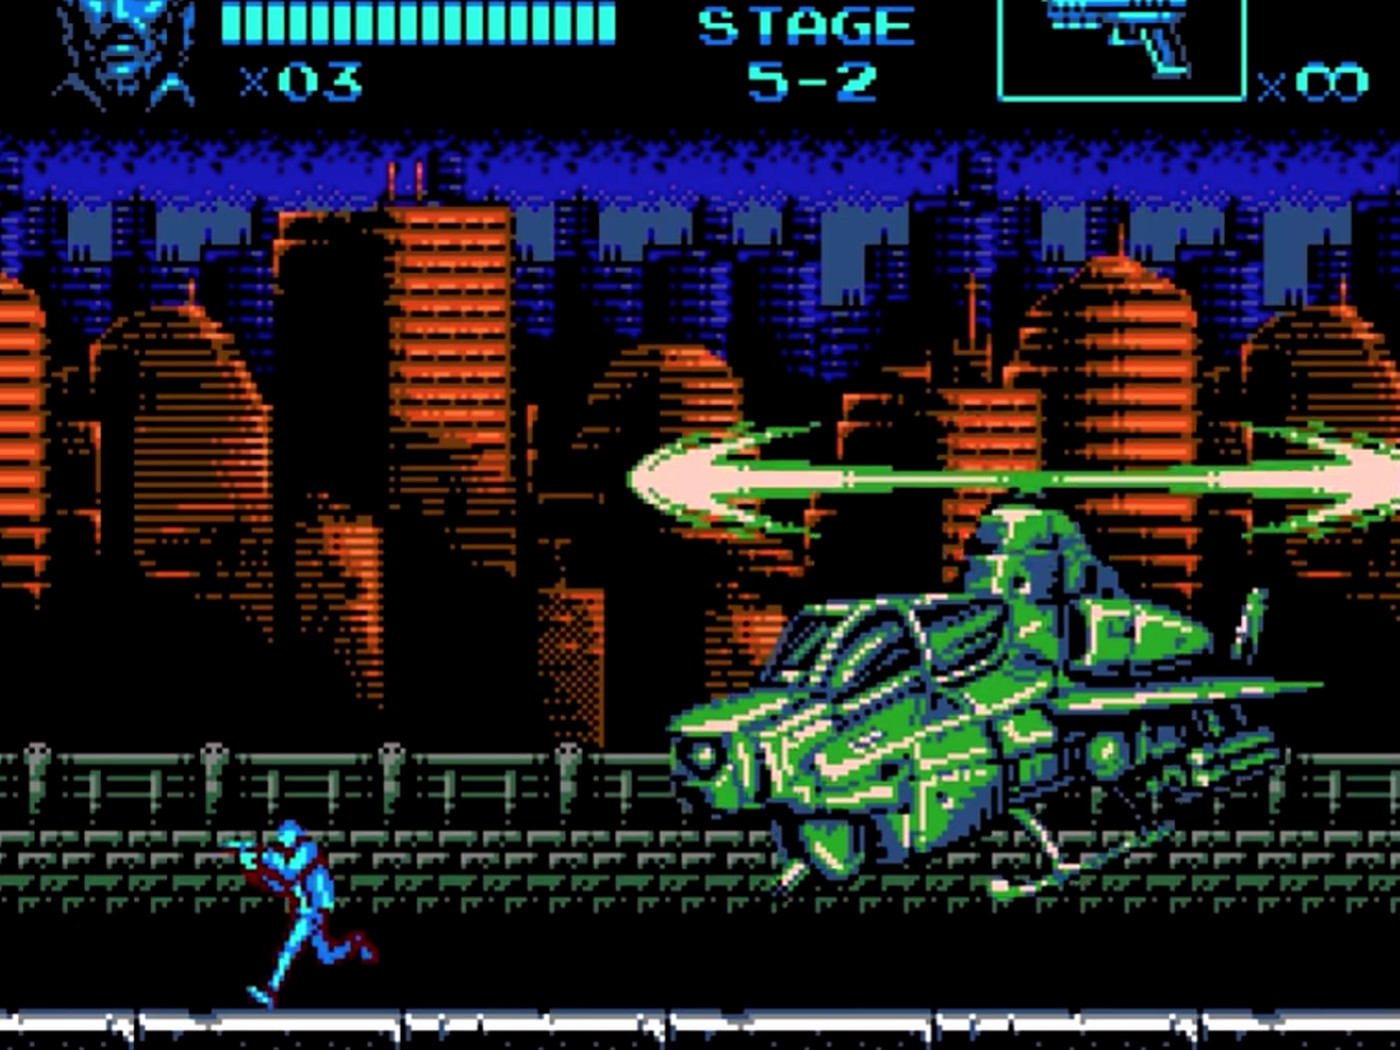 John Wick game for NES doesn't exist, doesn't let that stop it - Polygon